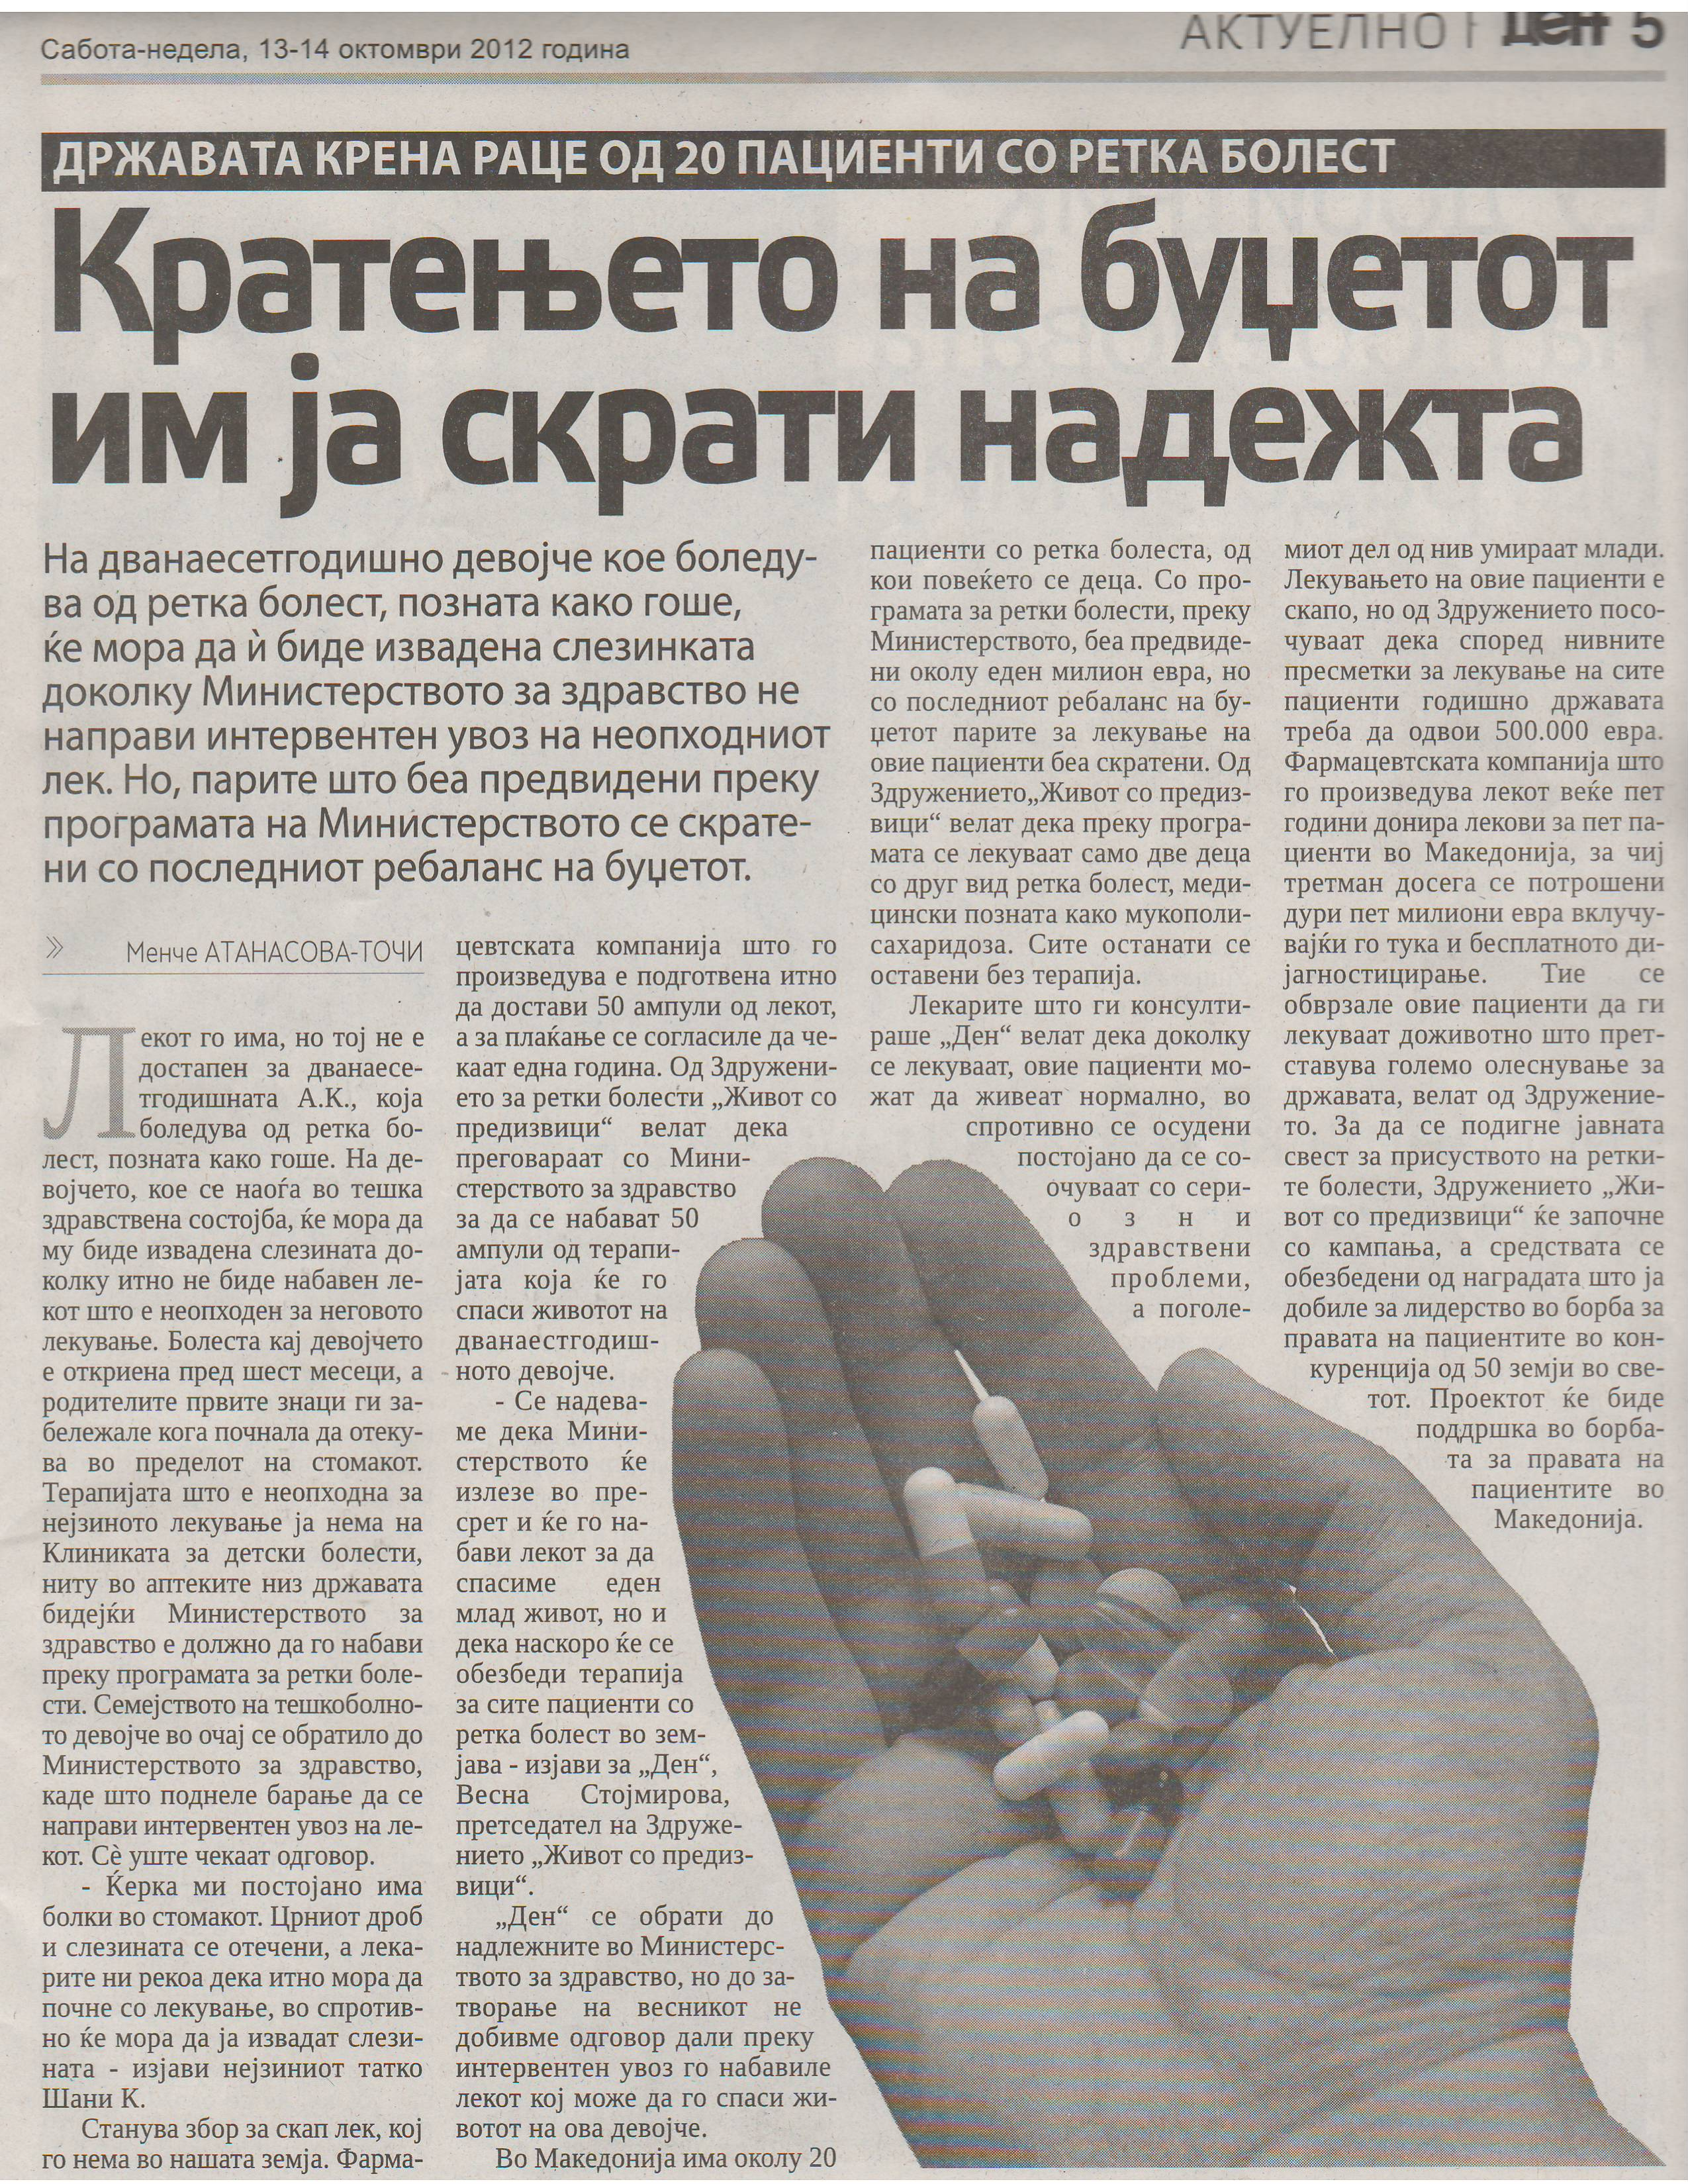 Den - daily national newspaper - rare diseases in Macedonia